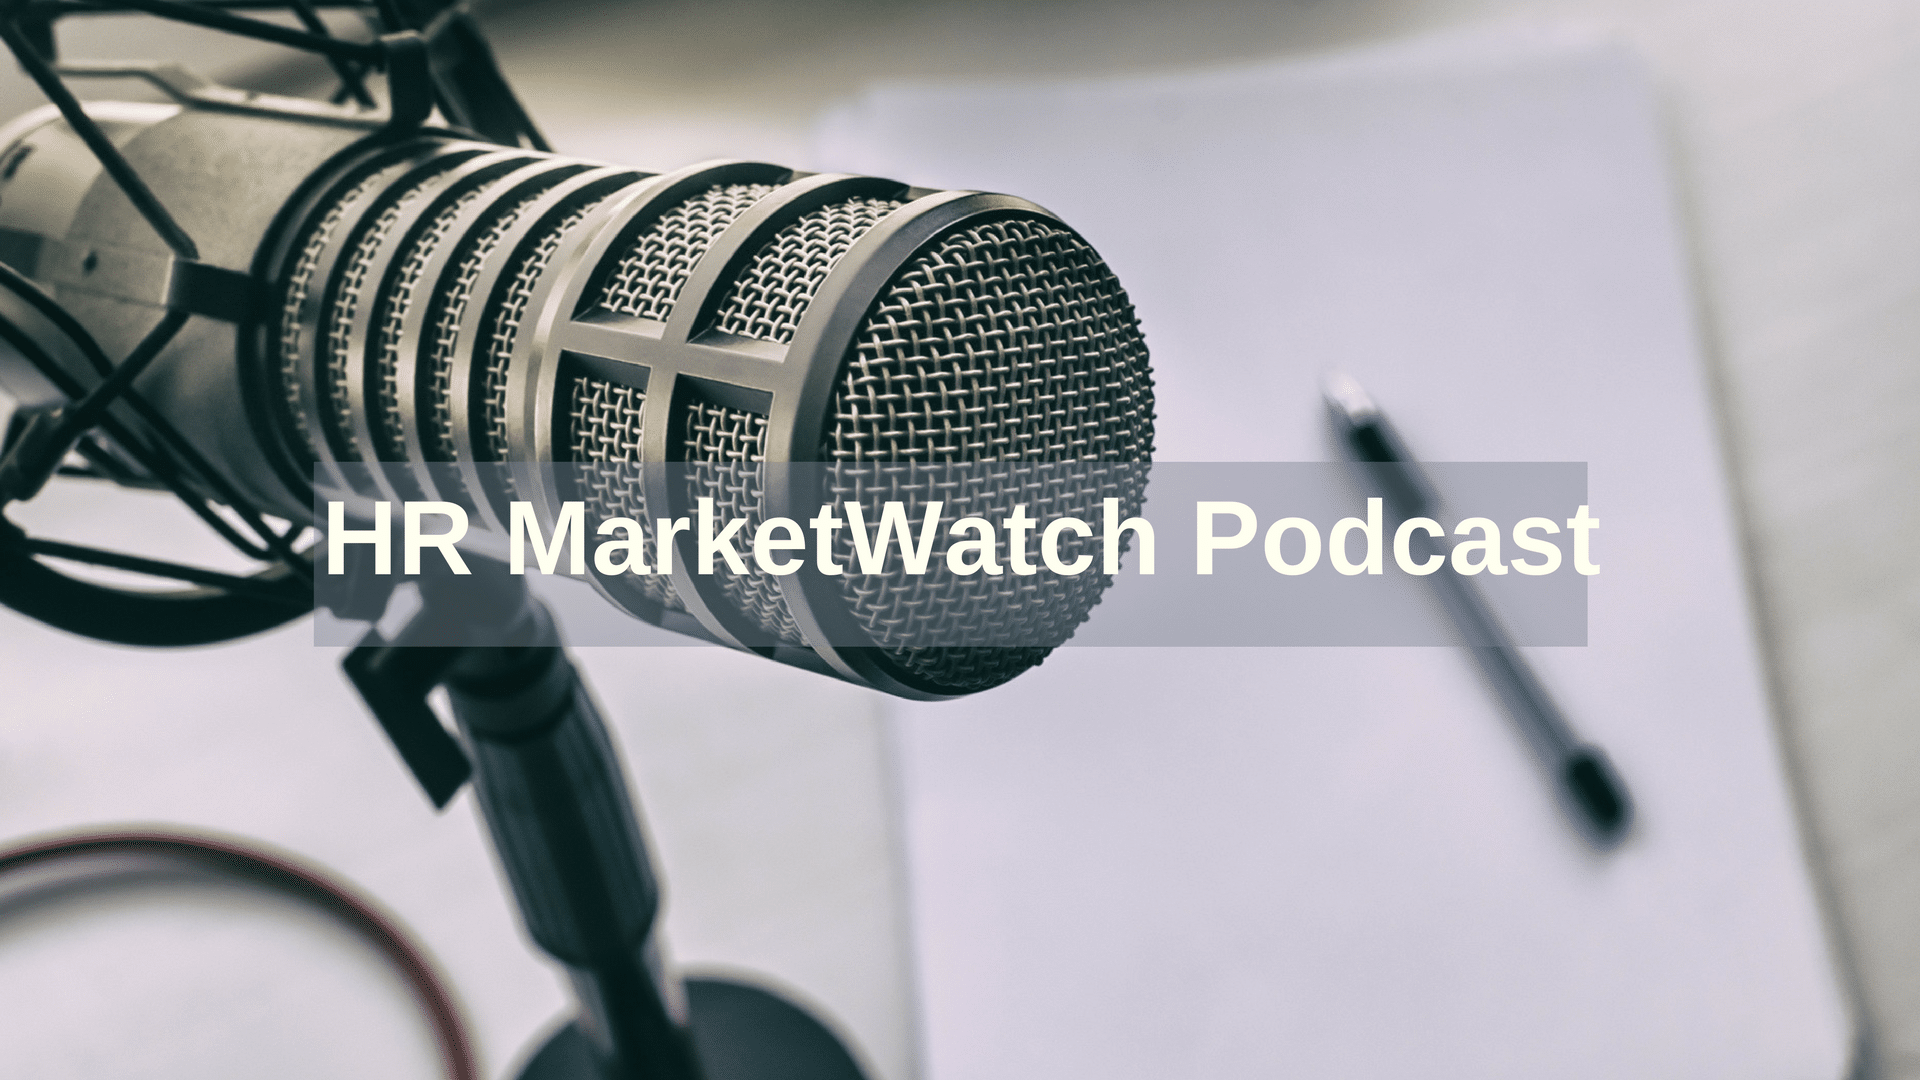 HR MarketWatch Podcast: What Great HR Technology Looks Like